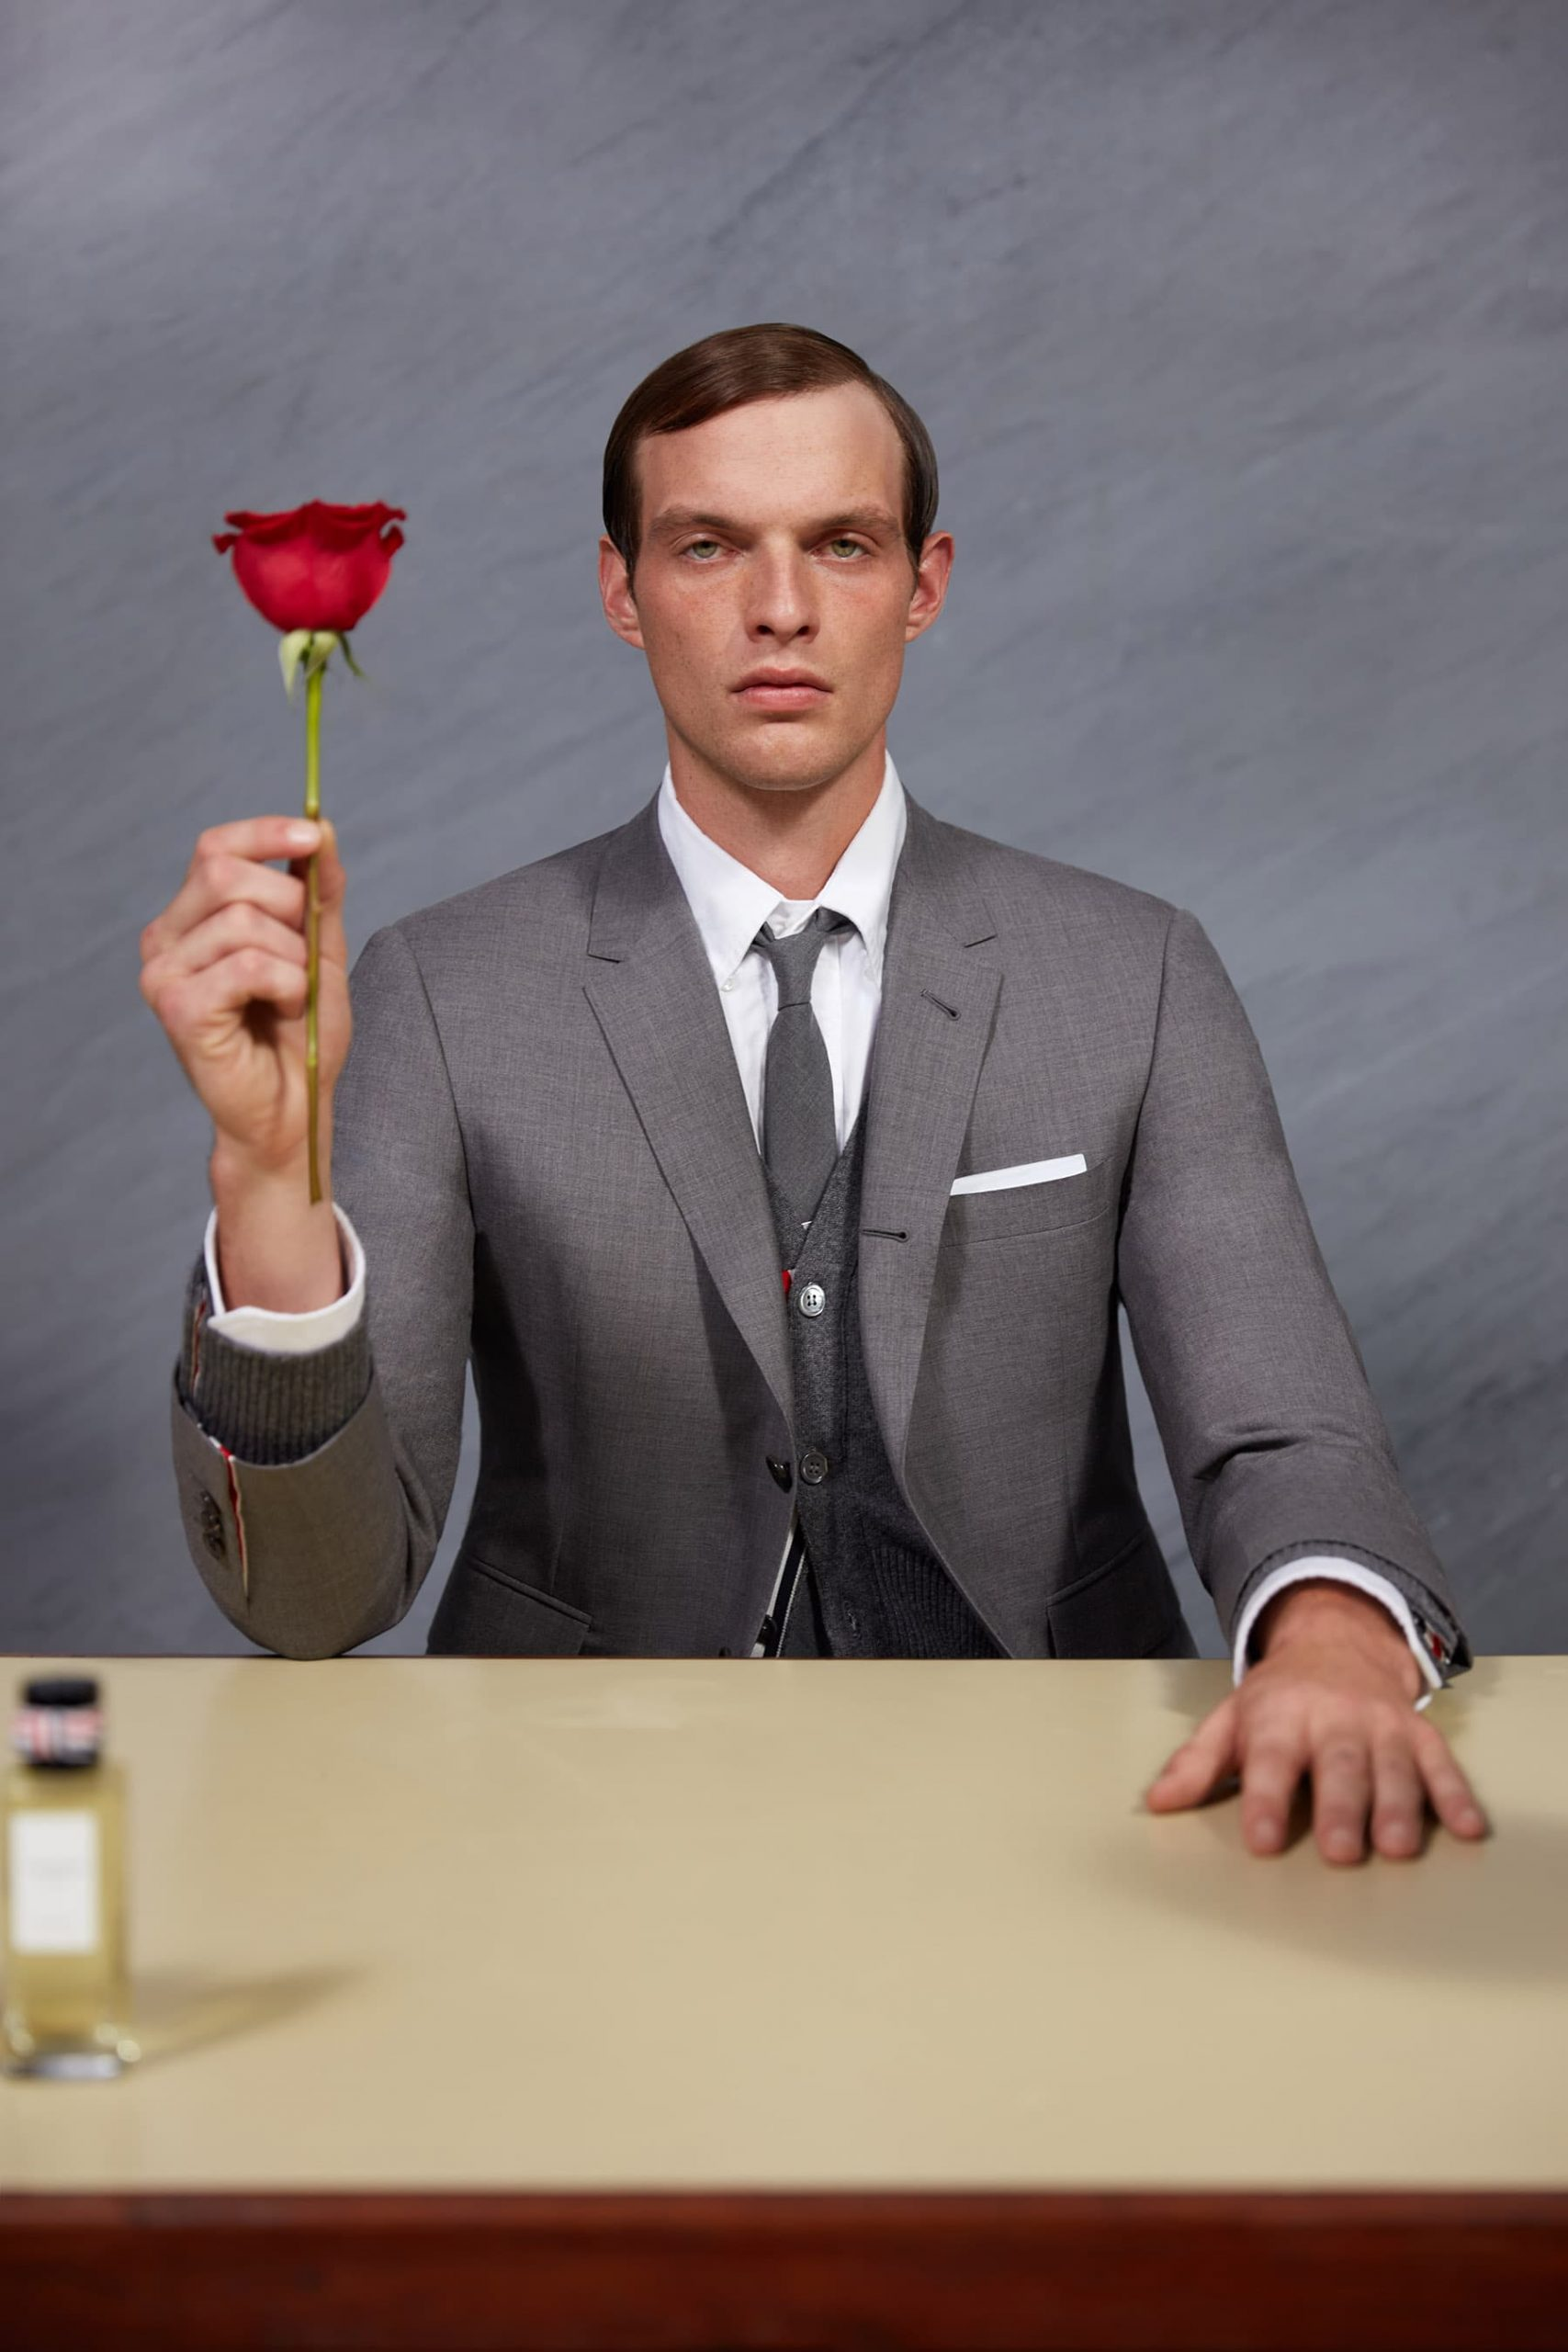 Thom Browne Fragrances Valentine's Day 2021 Campaign Photos